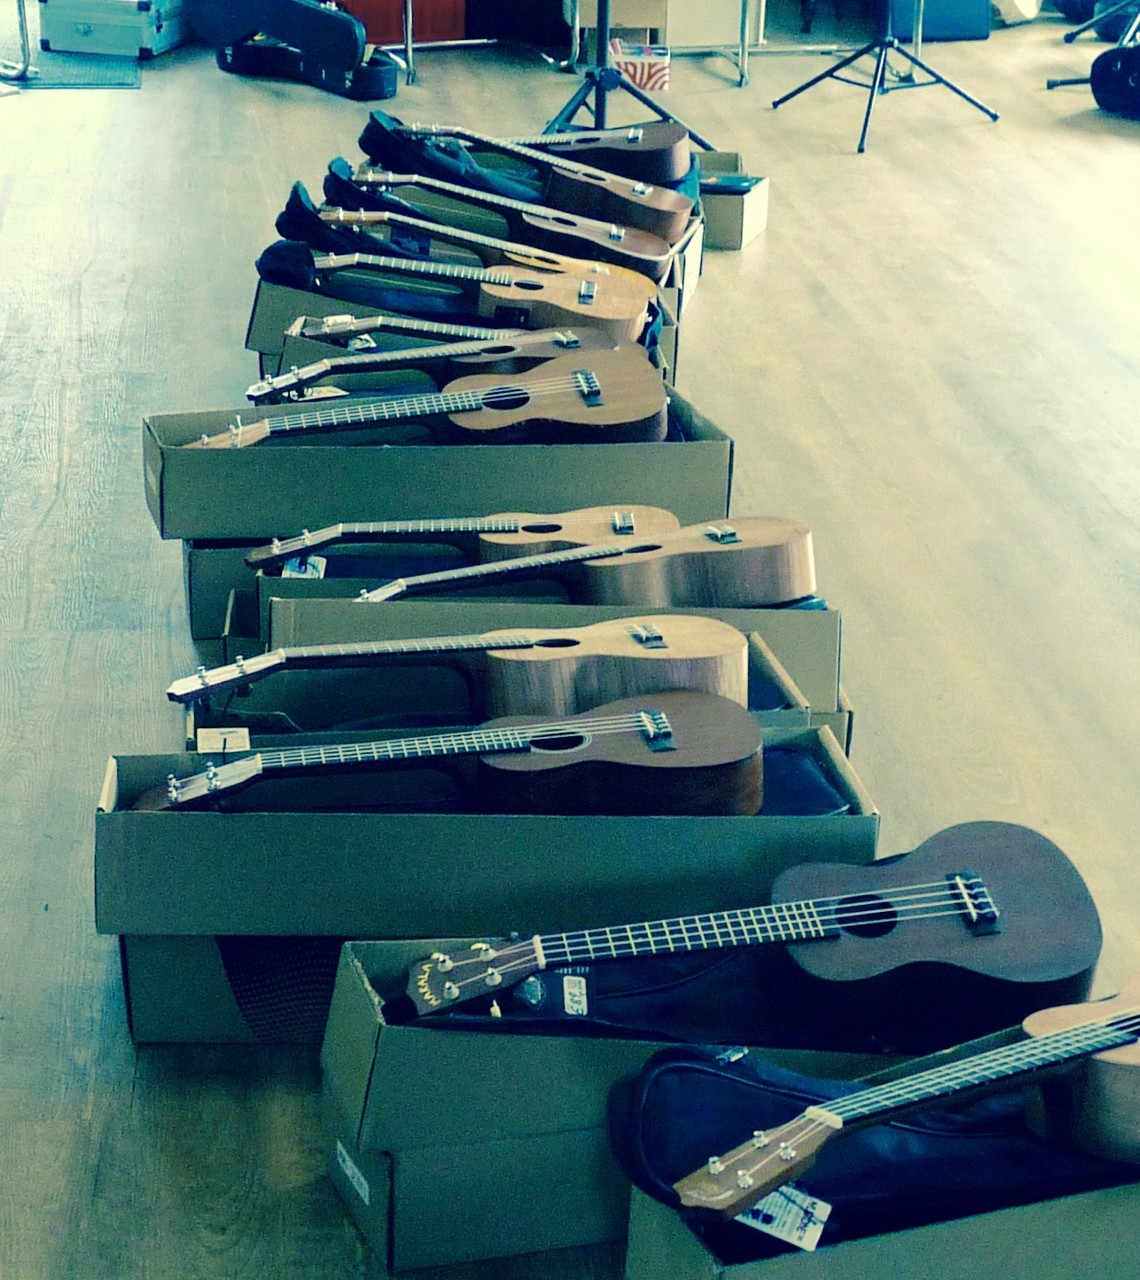 Ukulelenworkshop in Worpswede